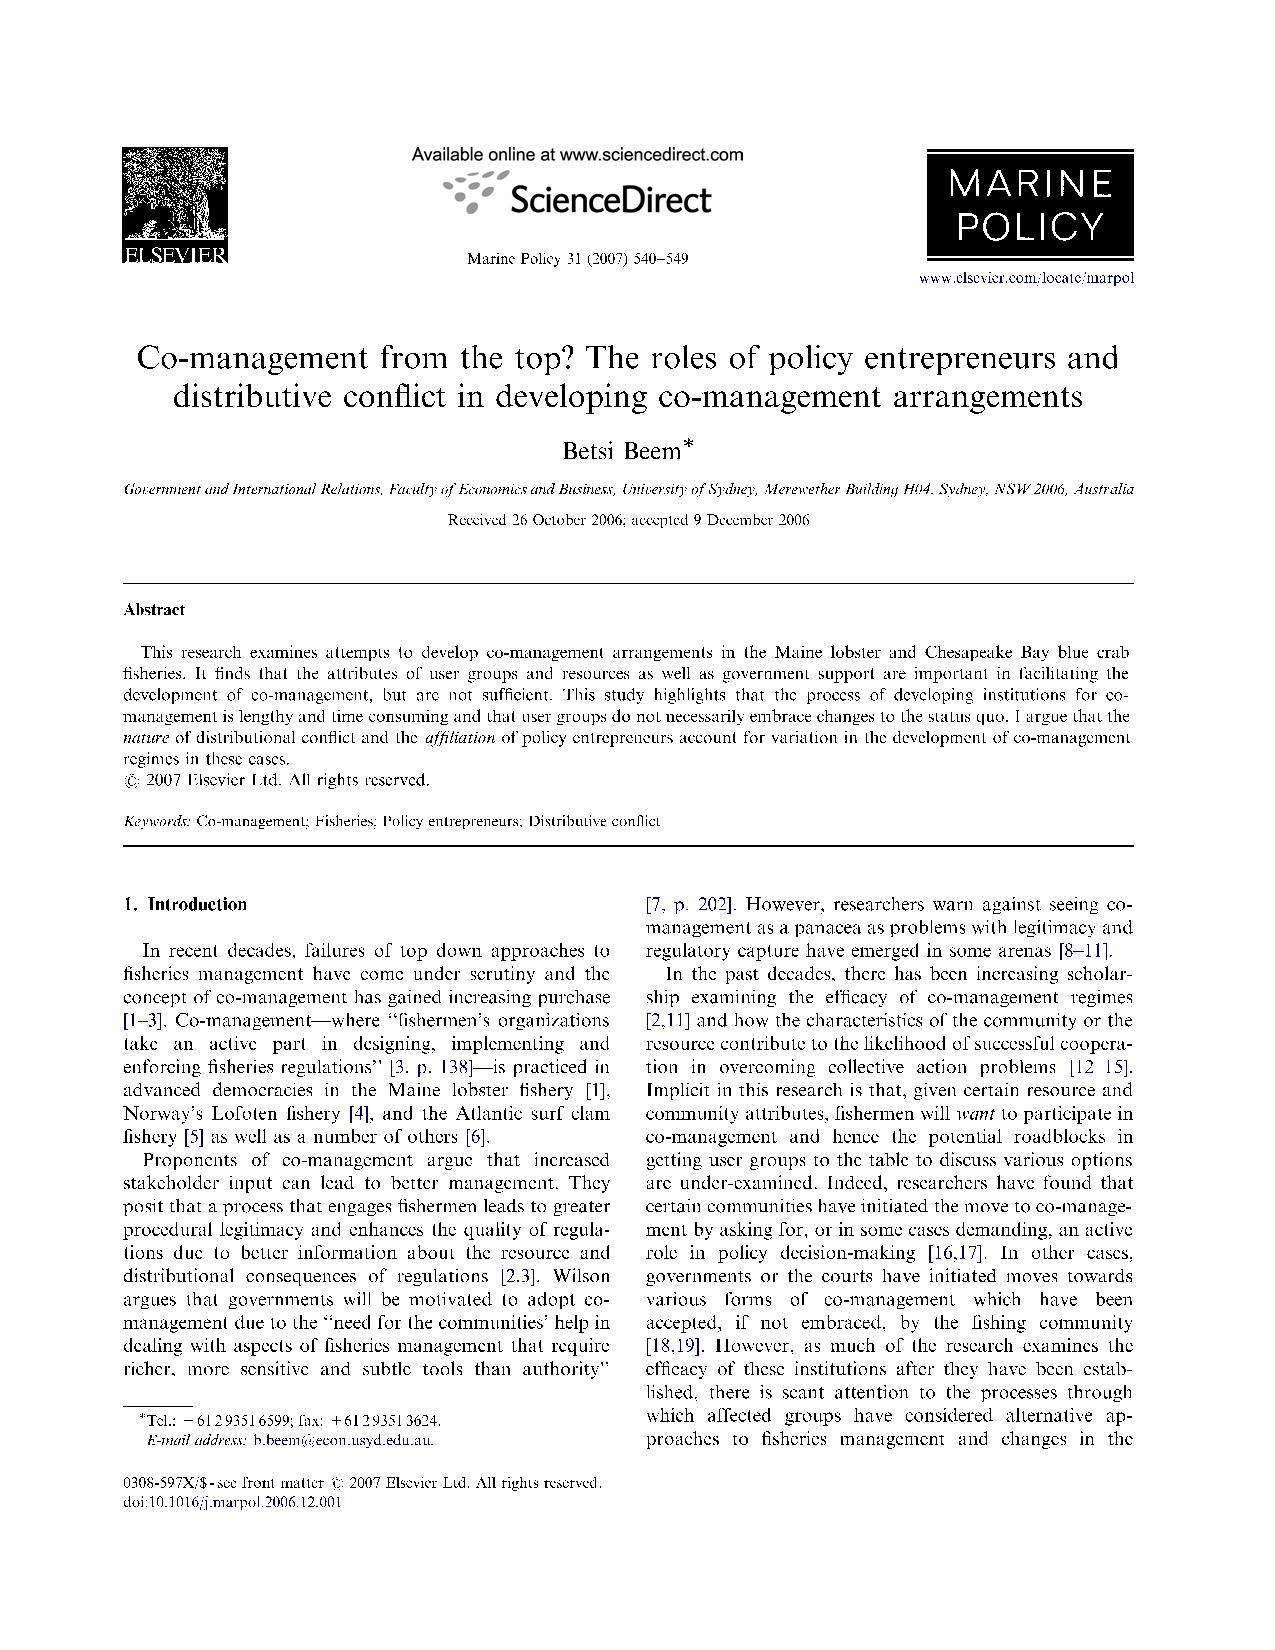 Co-management from the top? The roles of policy entrepreneurs and distributive conflict in developing co management arrangements15